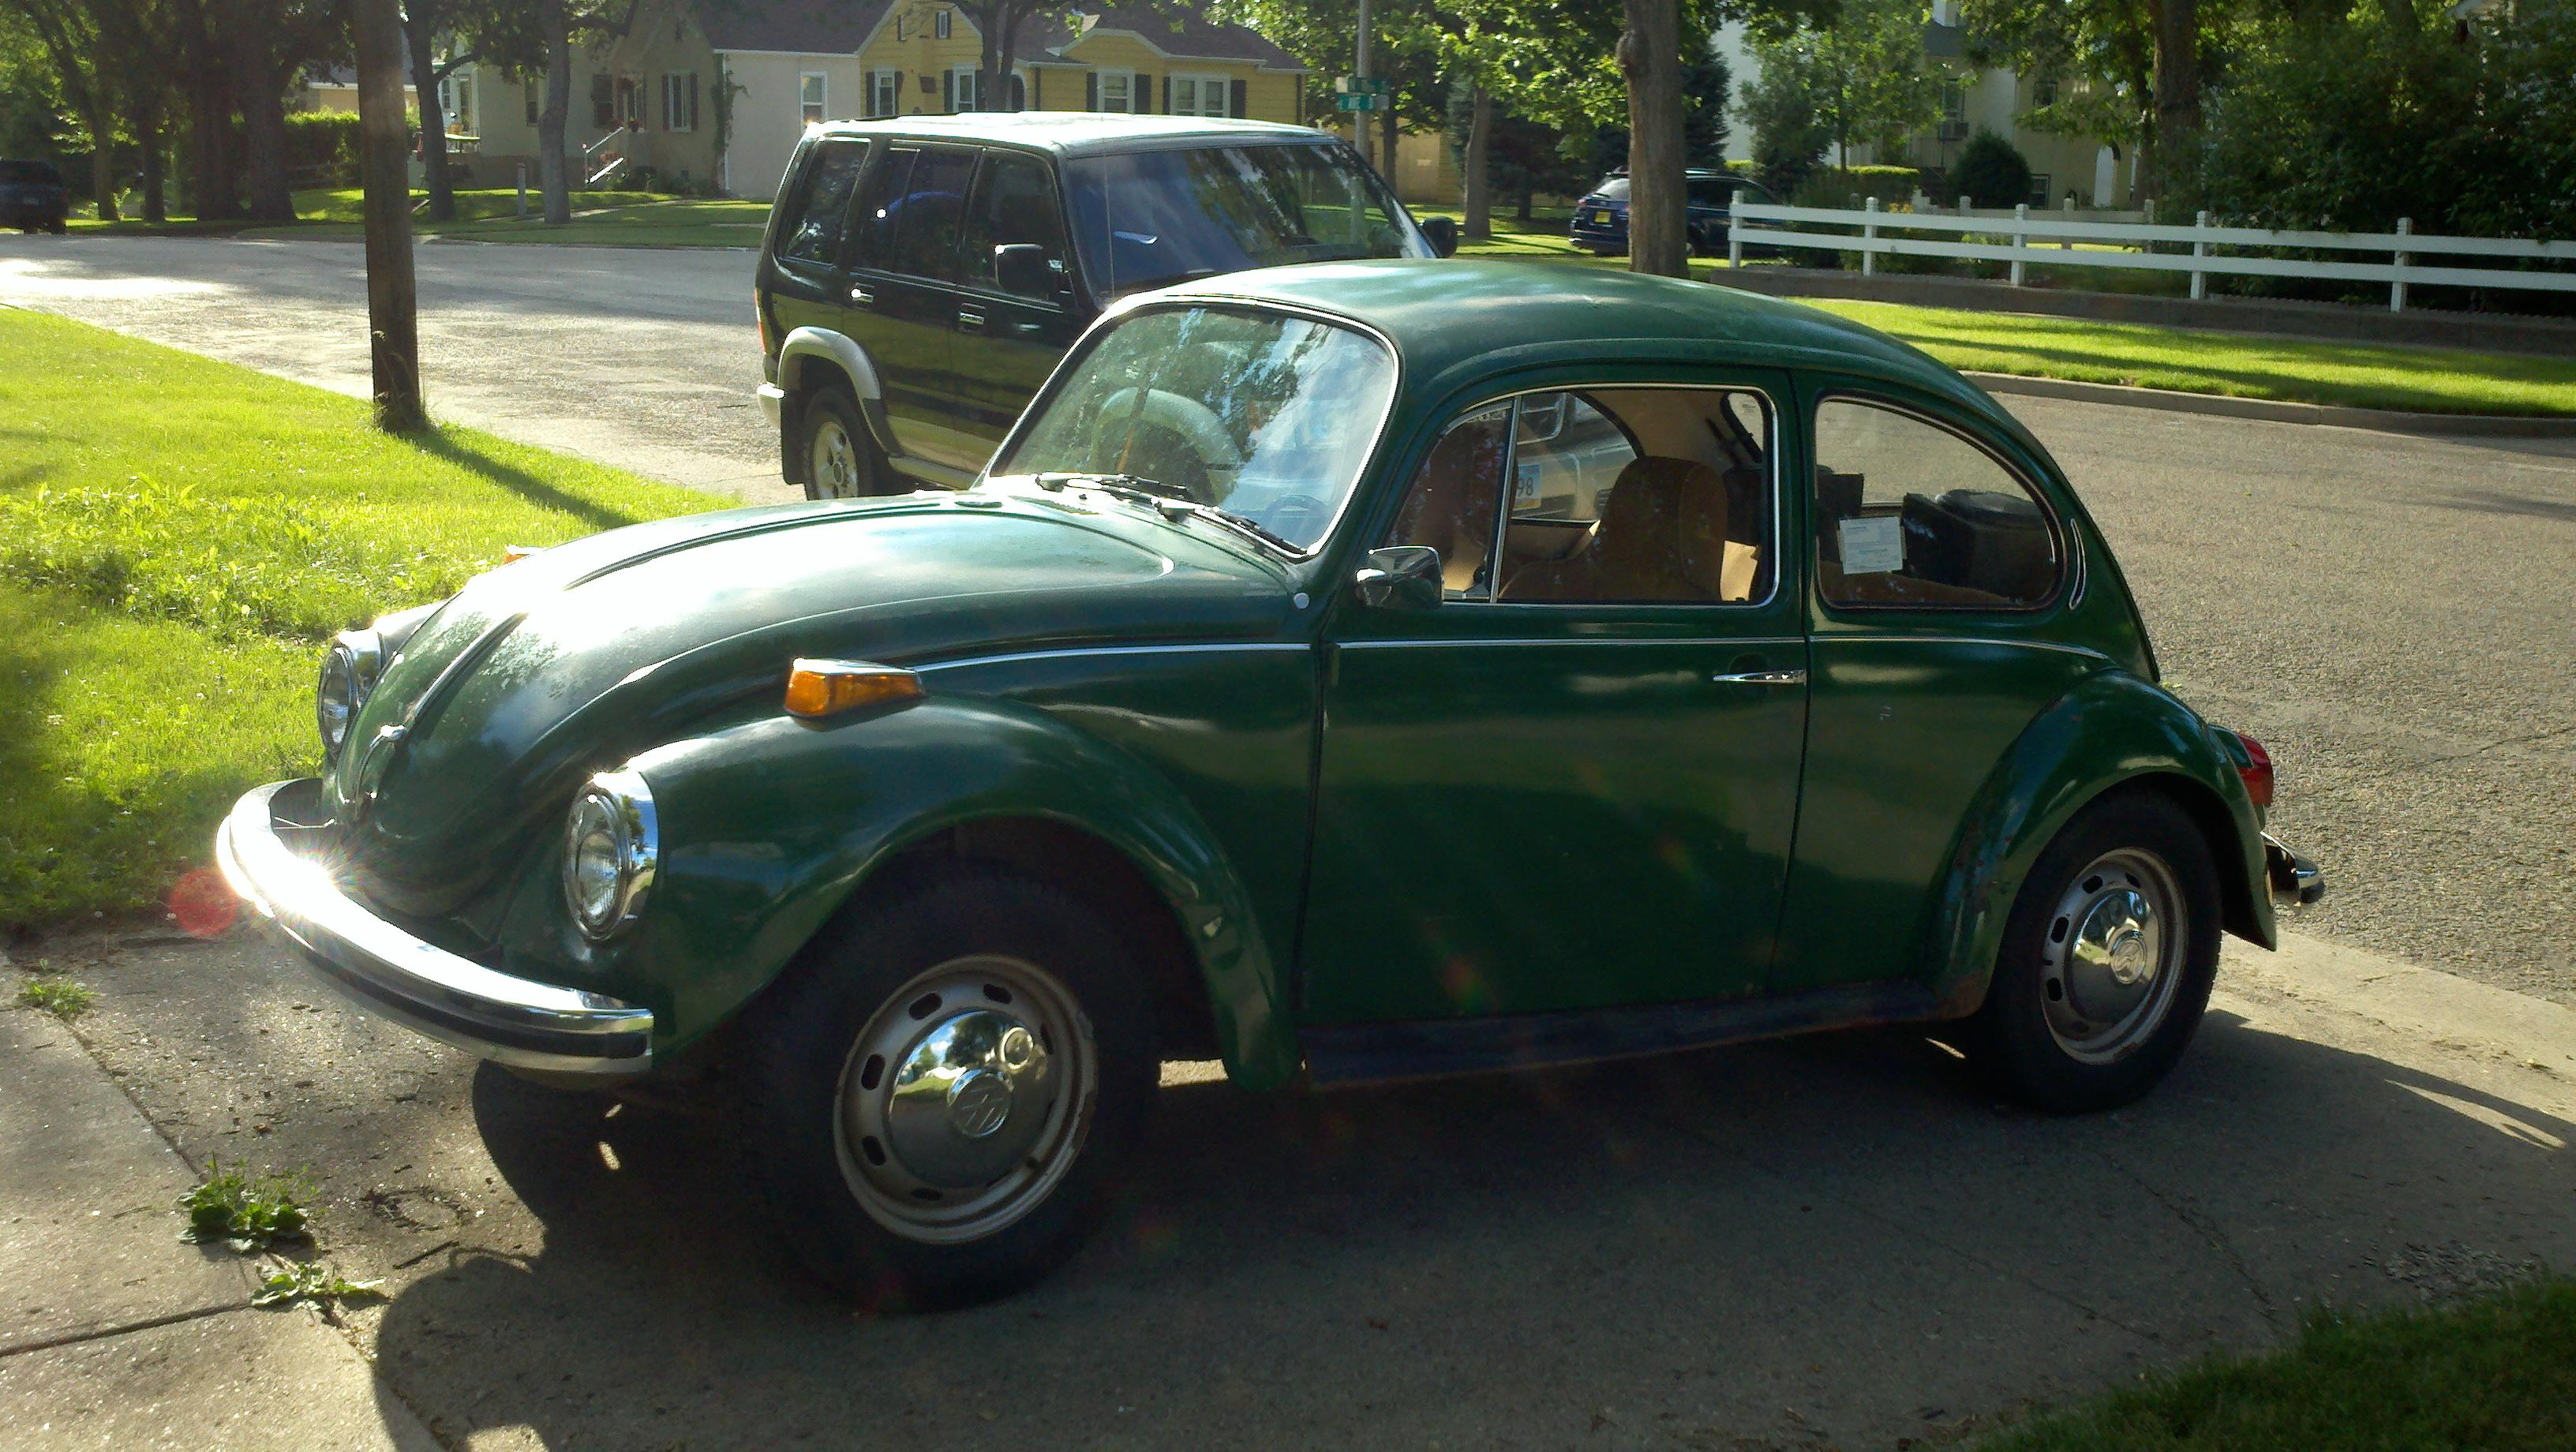 jackedupf150 1972 Volkswagen Super Beetle Specs, Photos, Modification Info at CarDomain